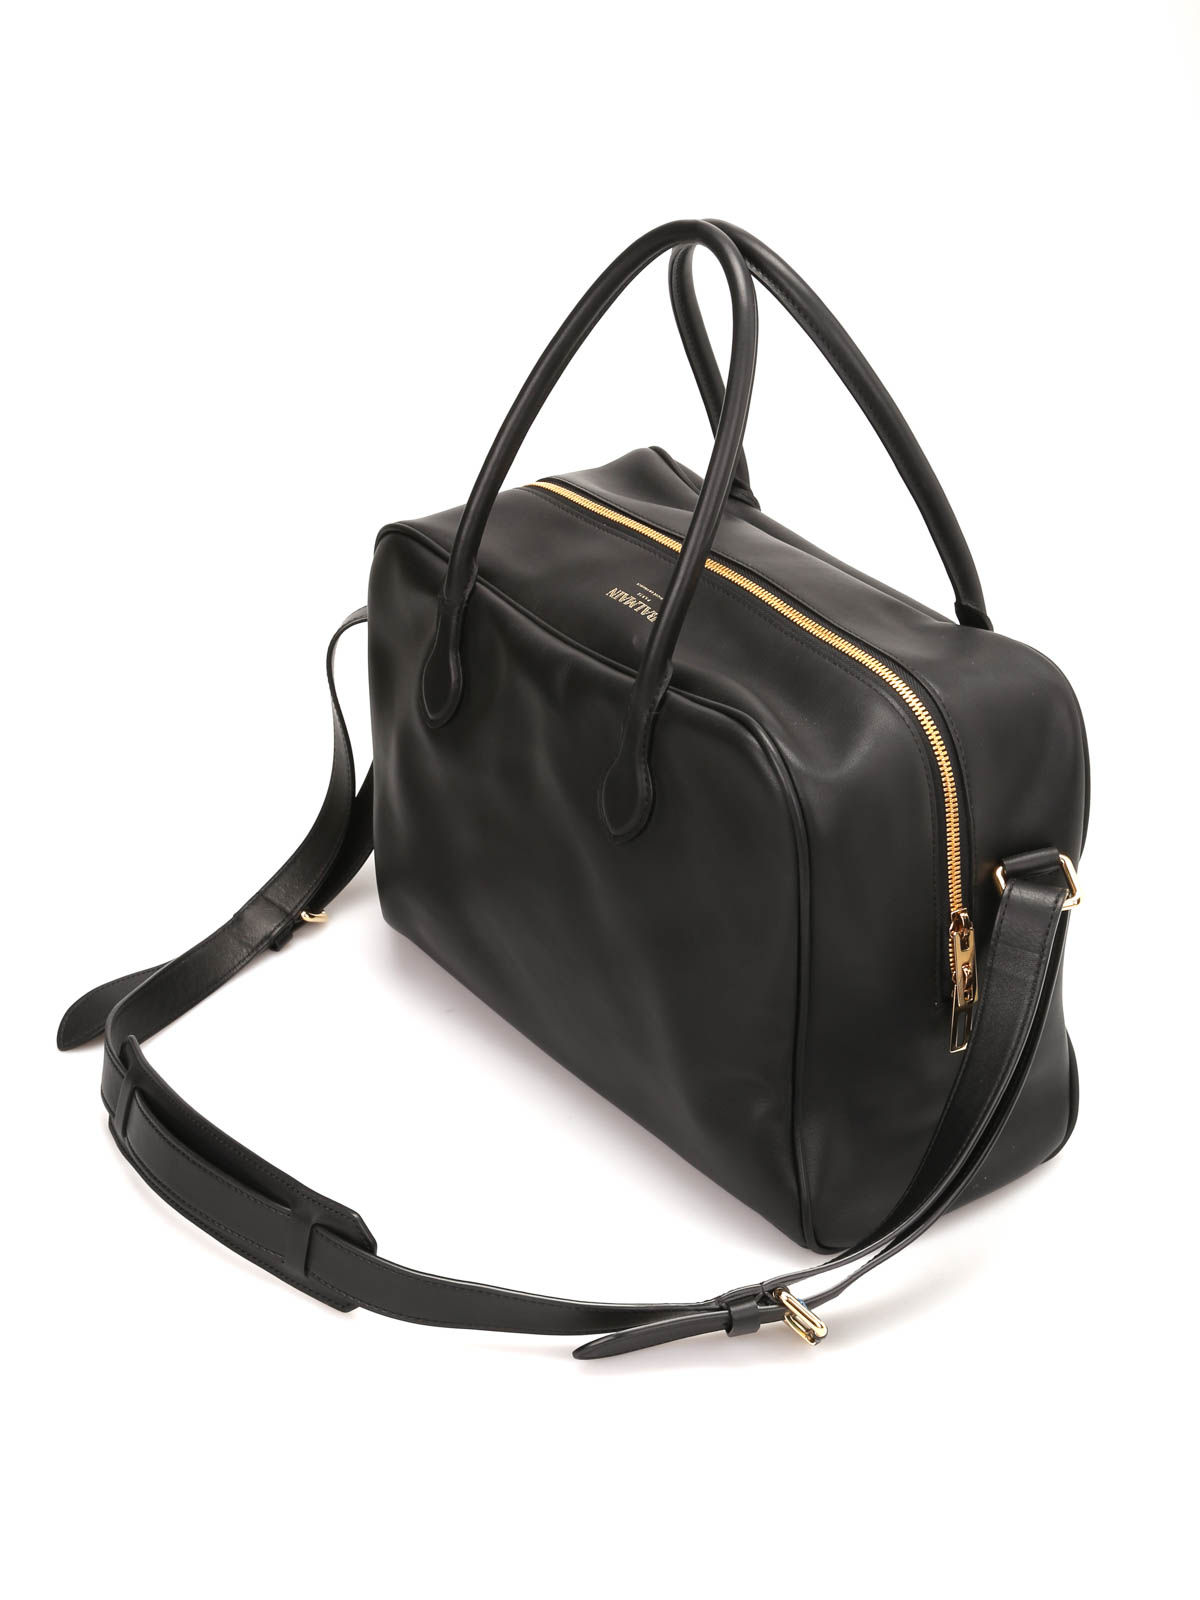 909c846aac9 Balmain - Smooth leather Pierre bag - bowling bags - POMSP013306176